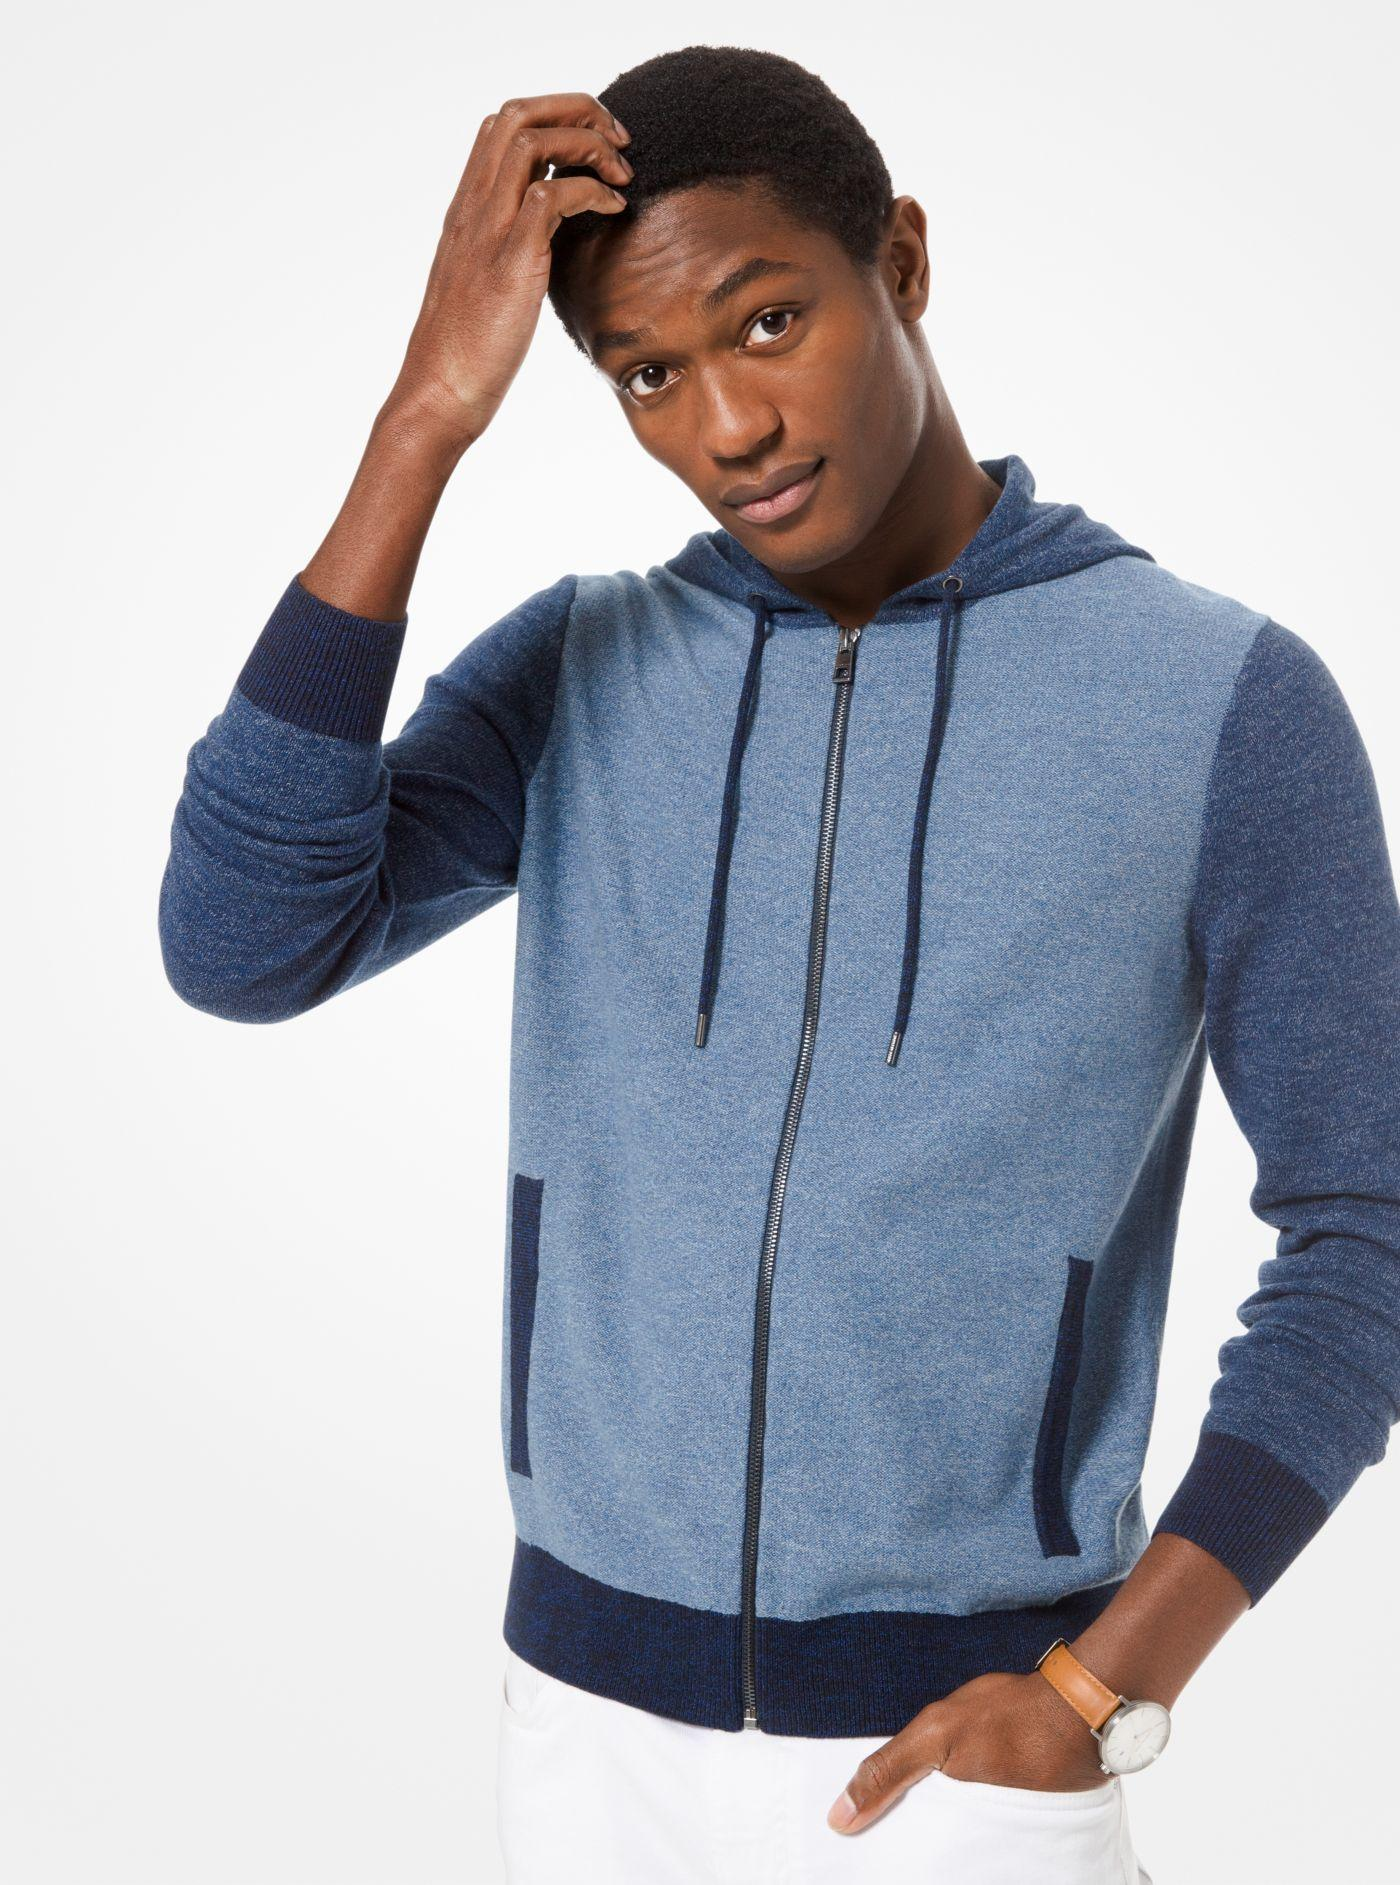 d29b40b2f35a3 Lyst - Michael Kors Color-block Cotton Zip-up Hoodie in Blue for Men